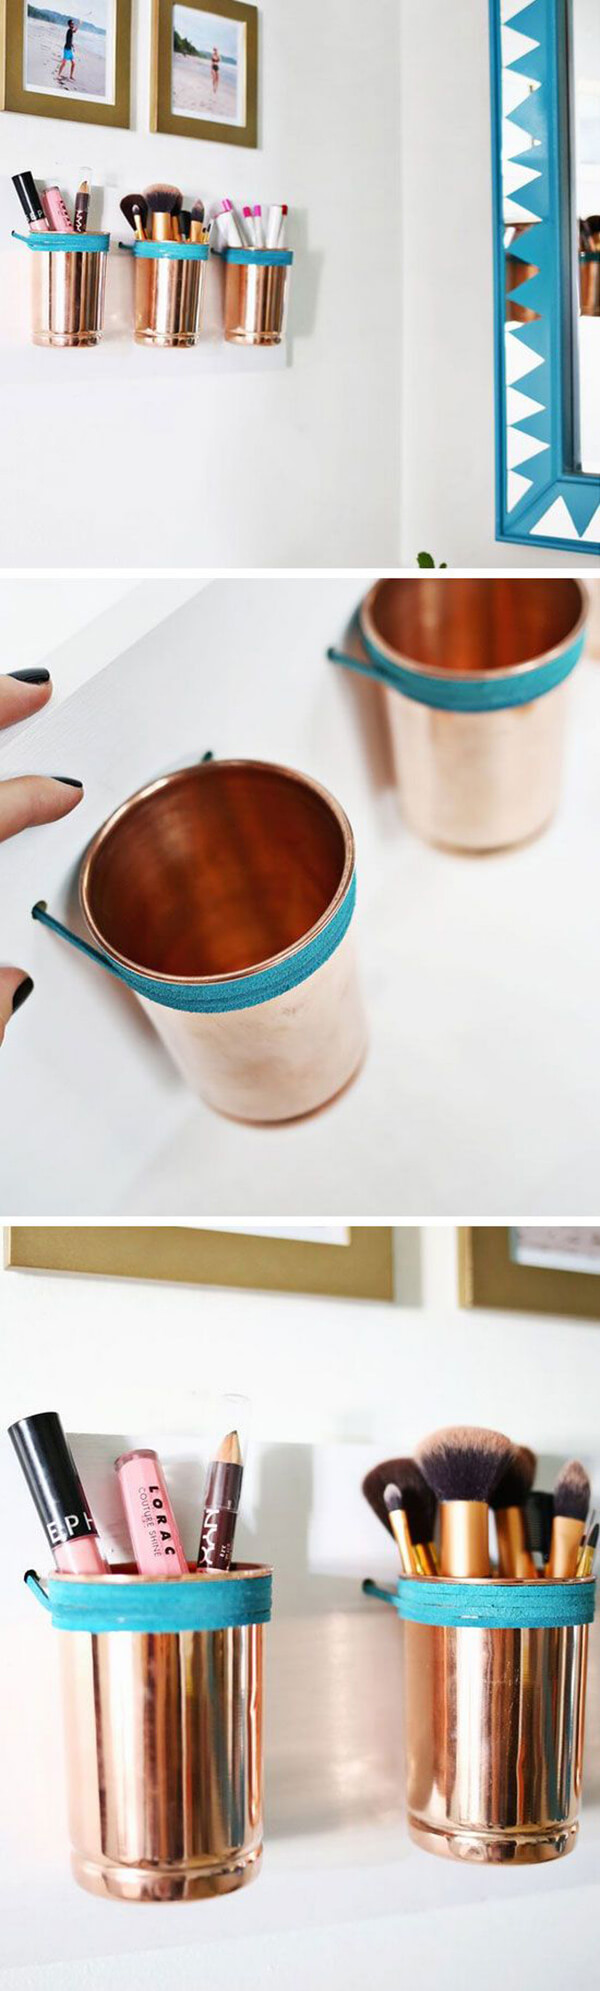 Upcycled Copper Cup Makeup Brush Organizers